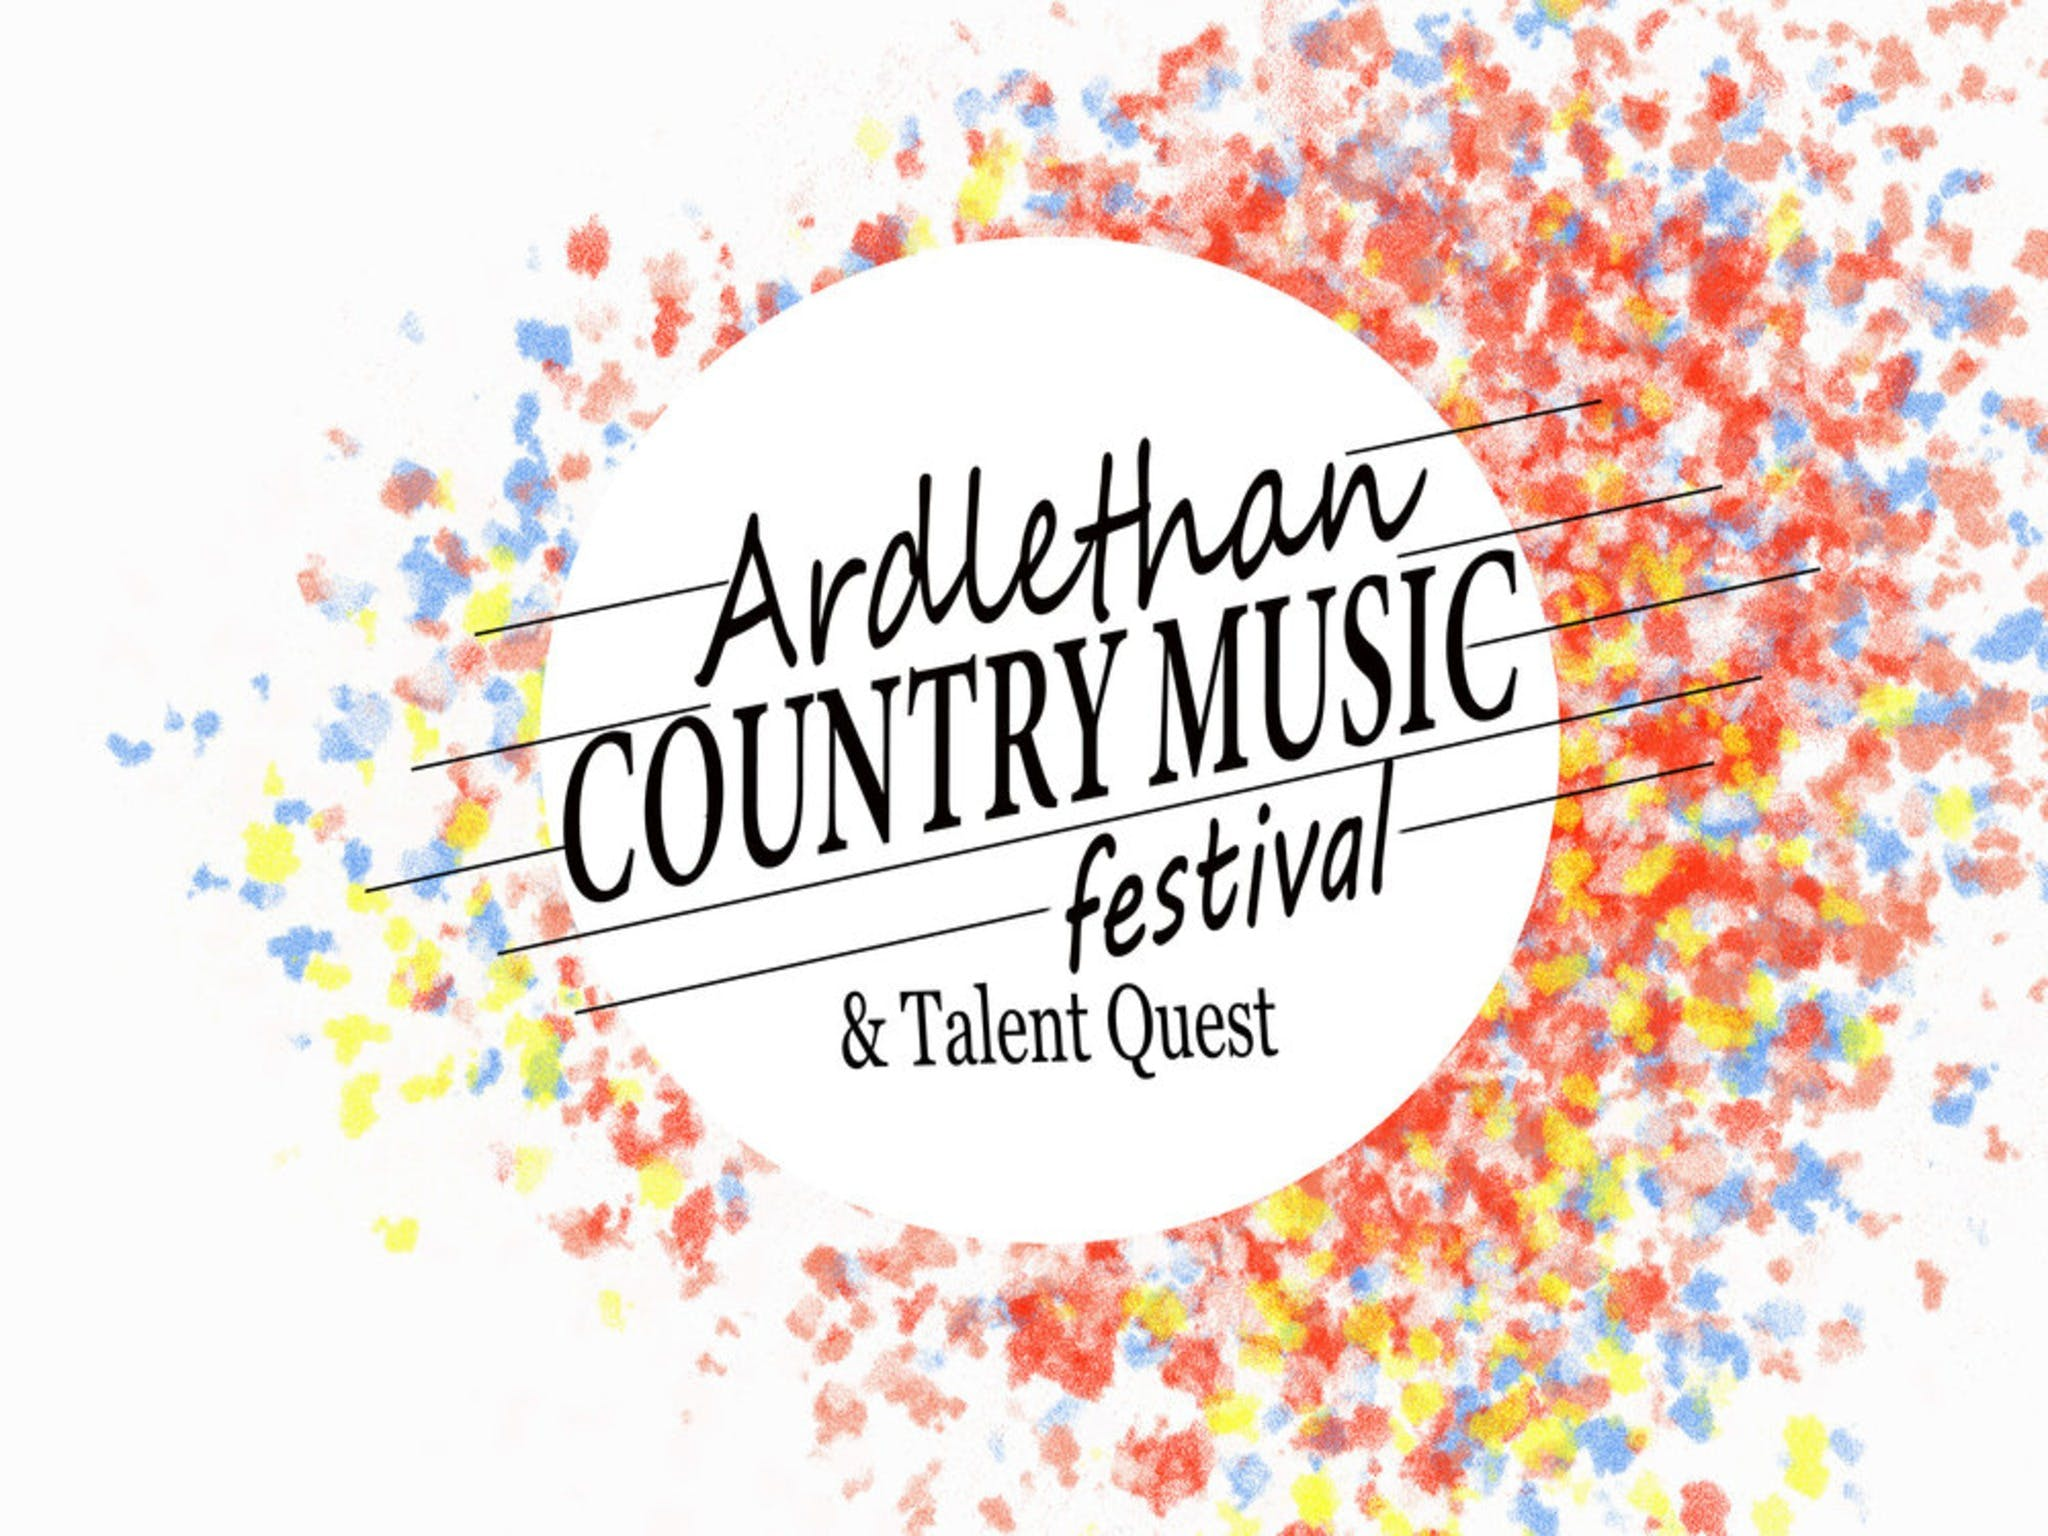 Ardlethan Country Music Festival - Townsville Tourism